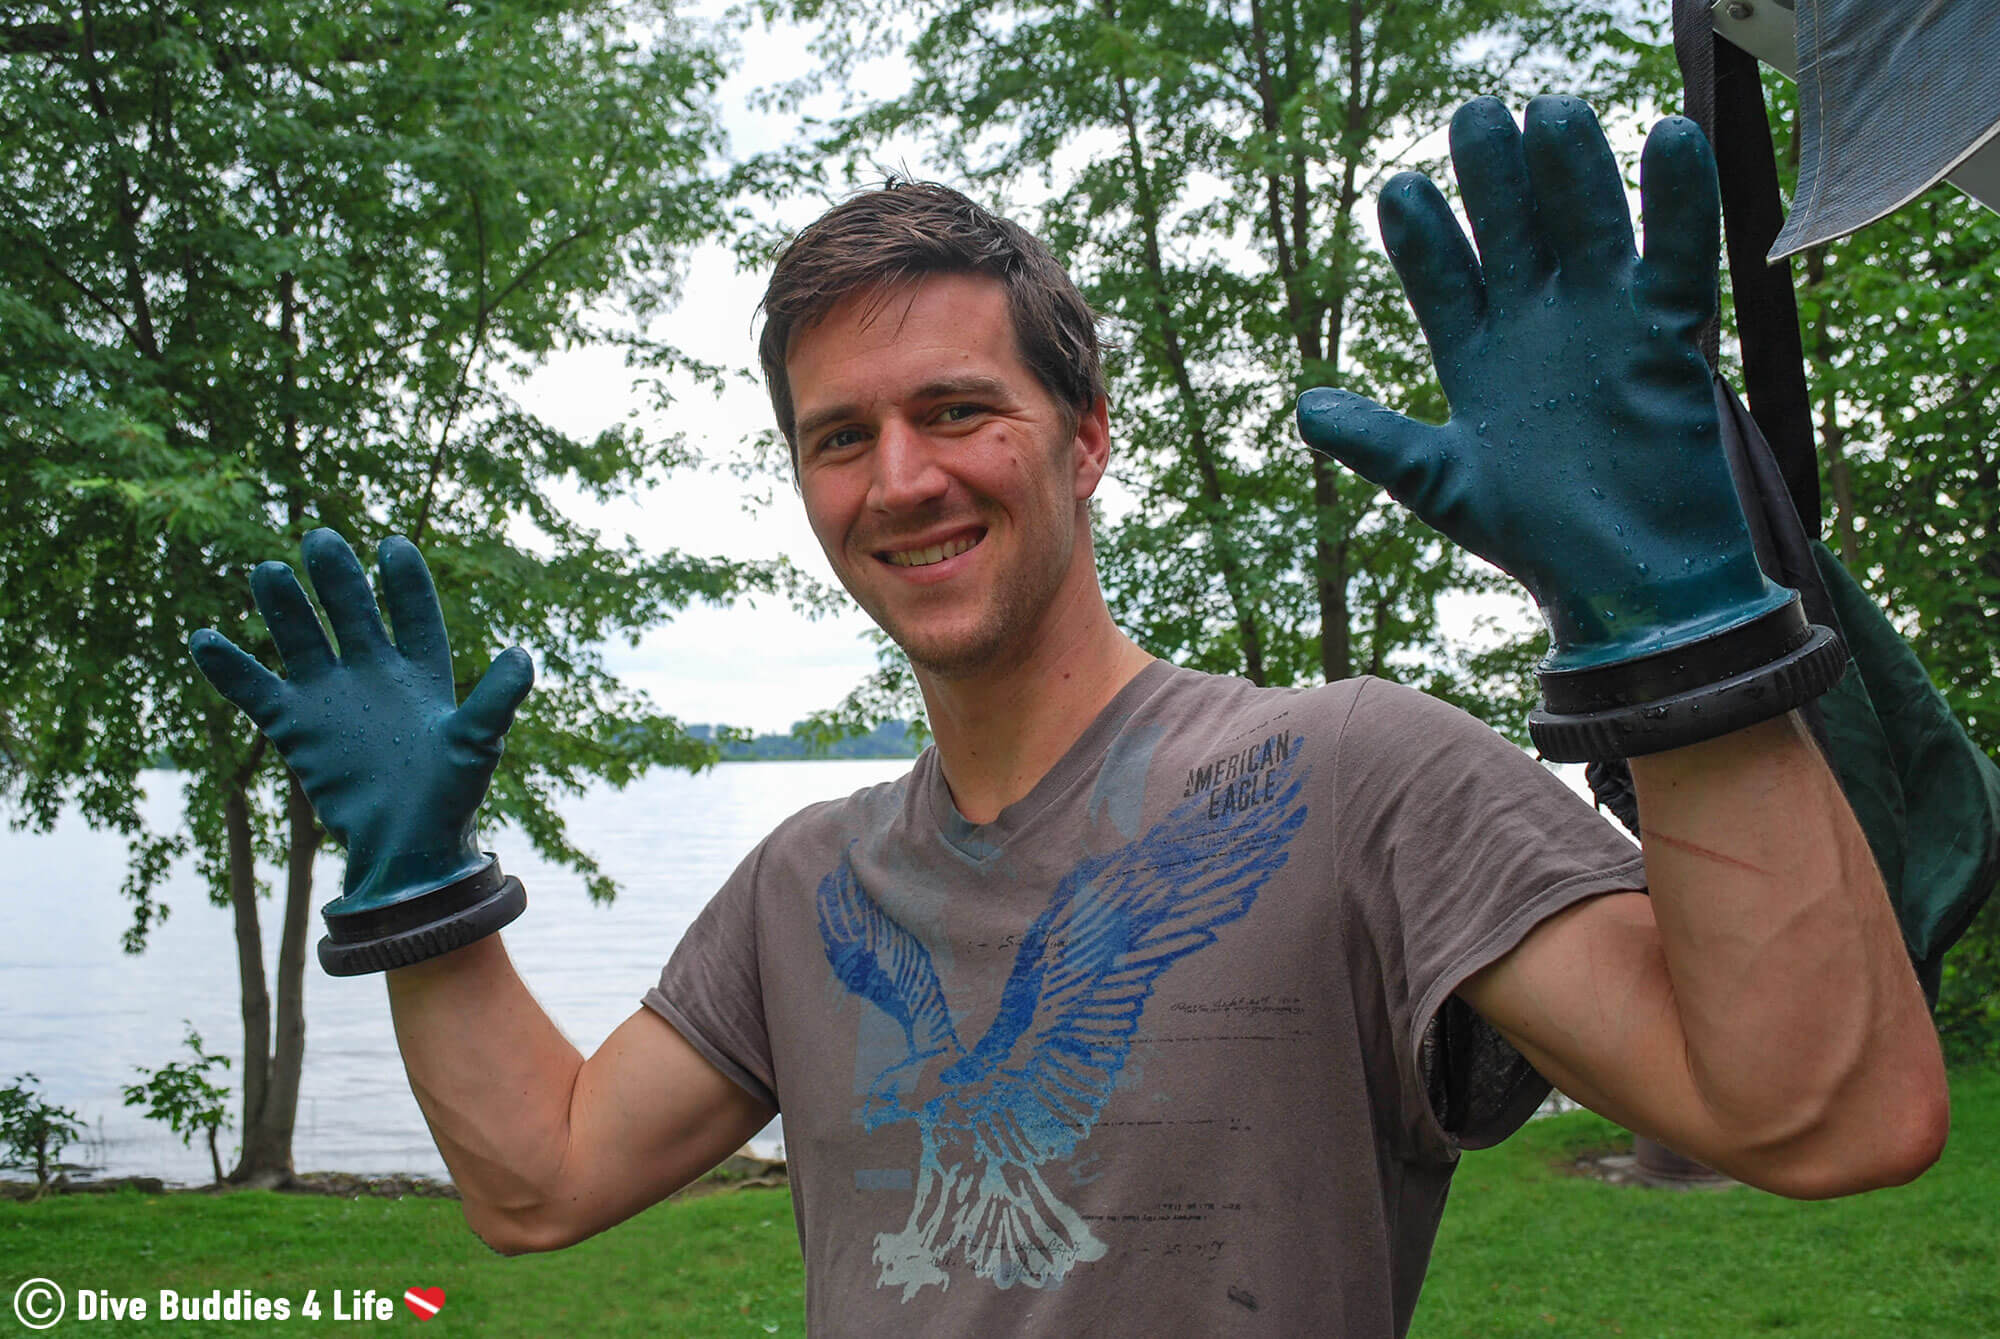 Joey With His New Dry Gloves In Brockville, Ontario Scuba Diving, Canada